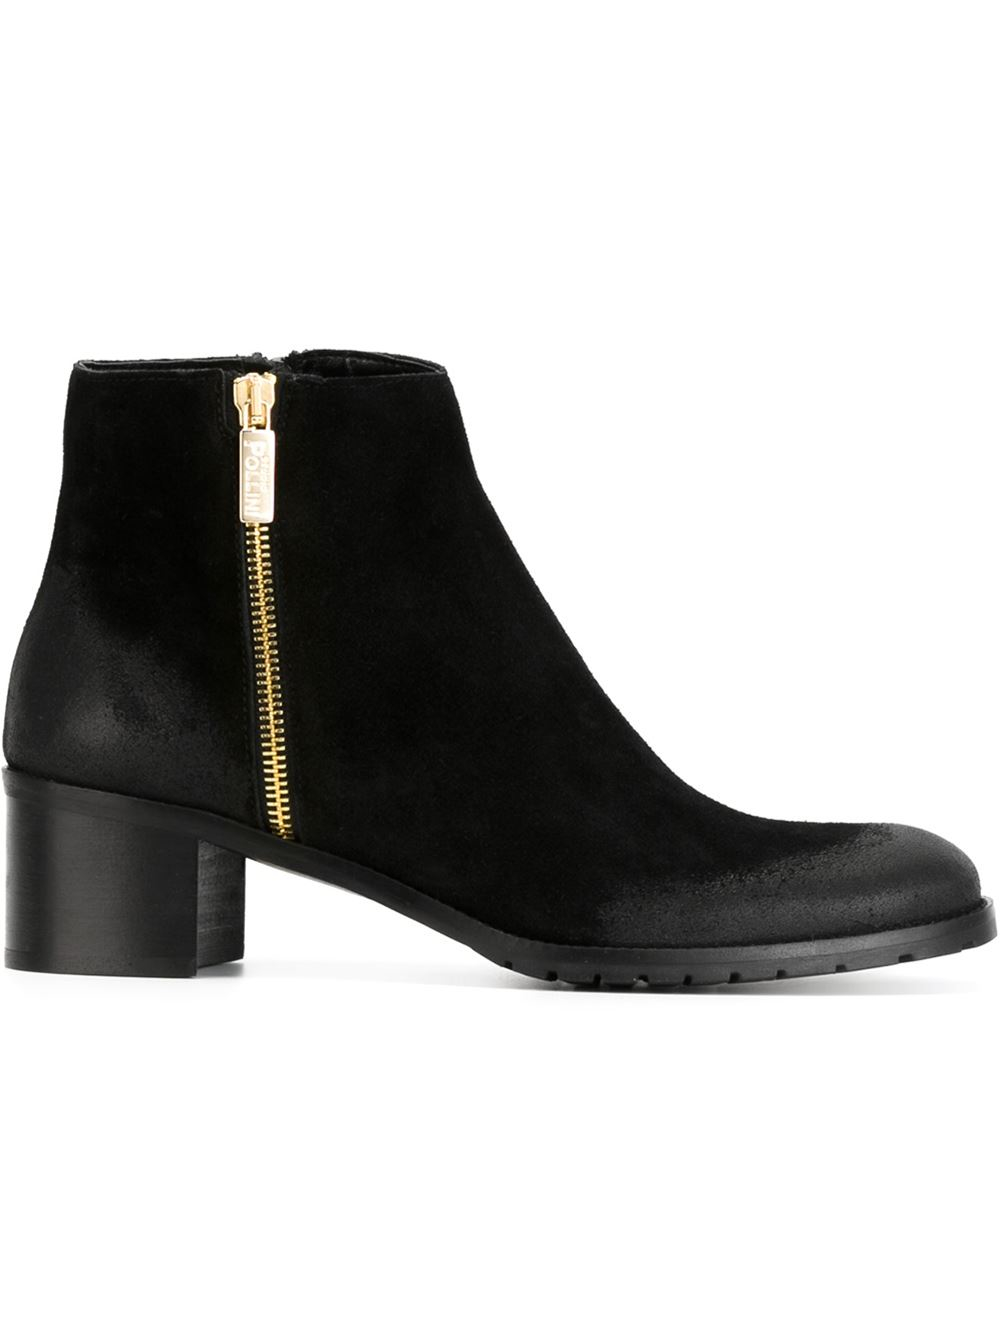 Black Suede Chunky Heel Boots